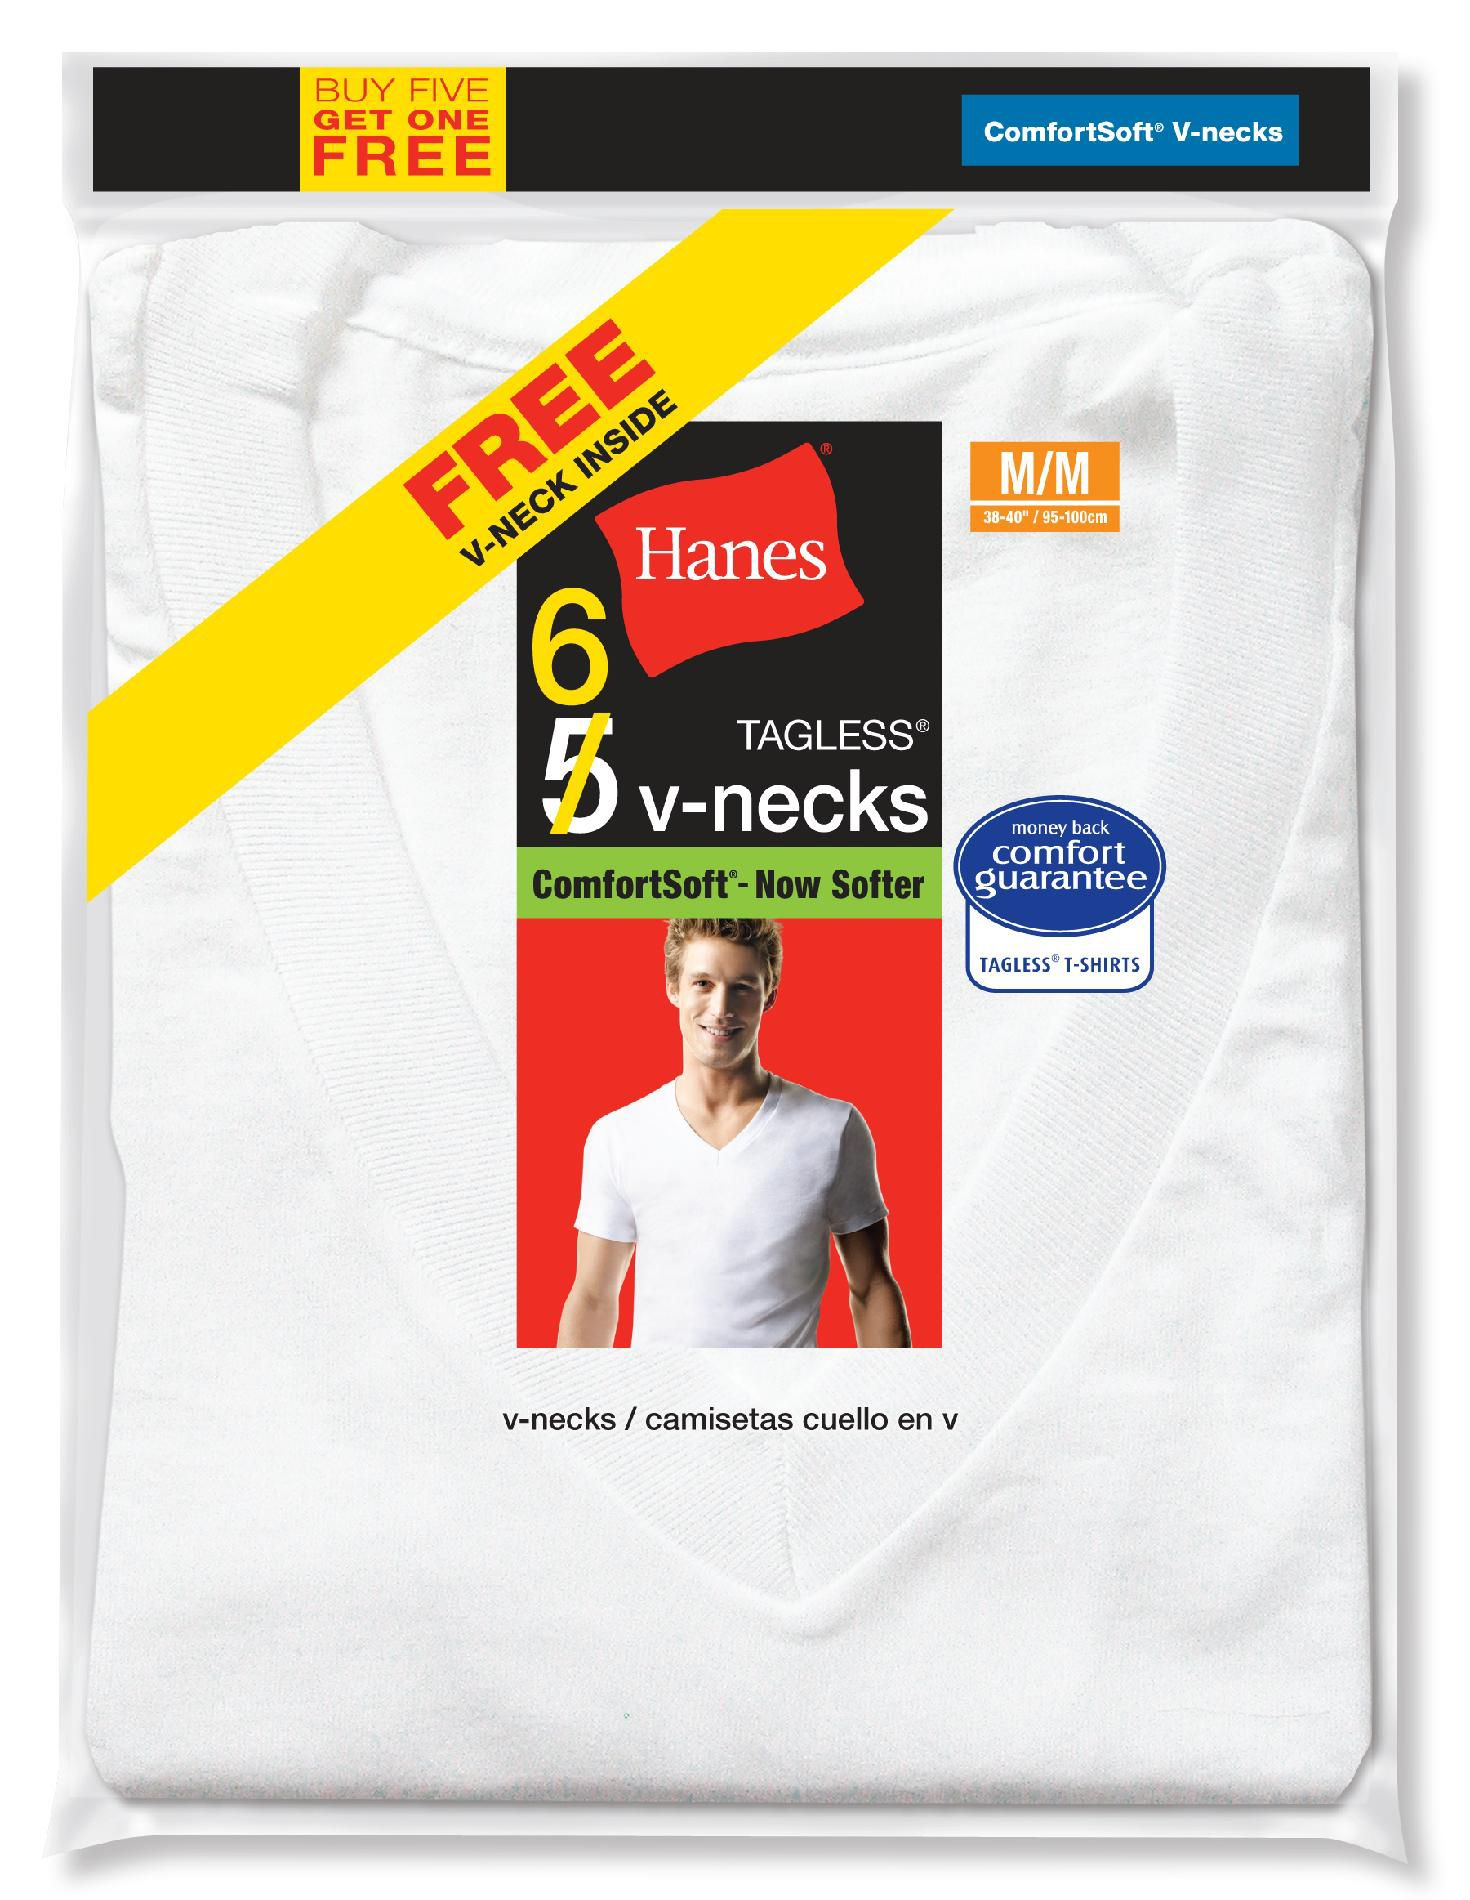 Hanes Men's T-Shirts 6pk Short Sleeve V-Neck Comfort Soft